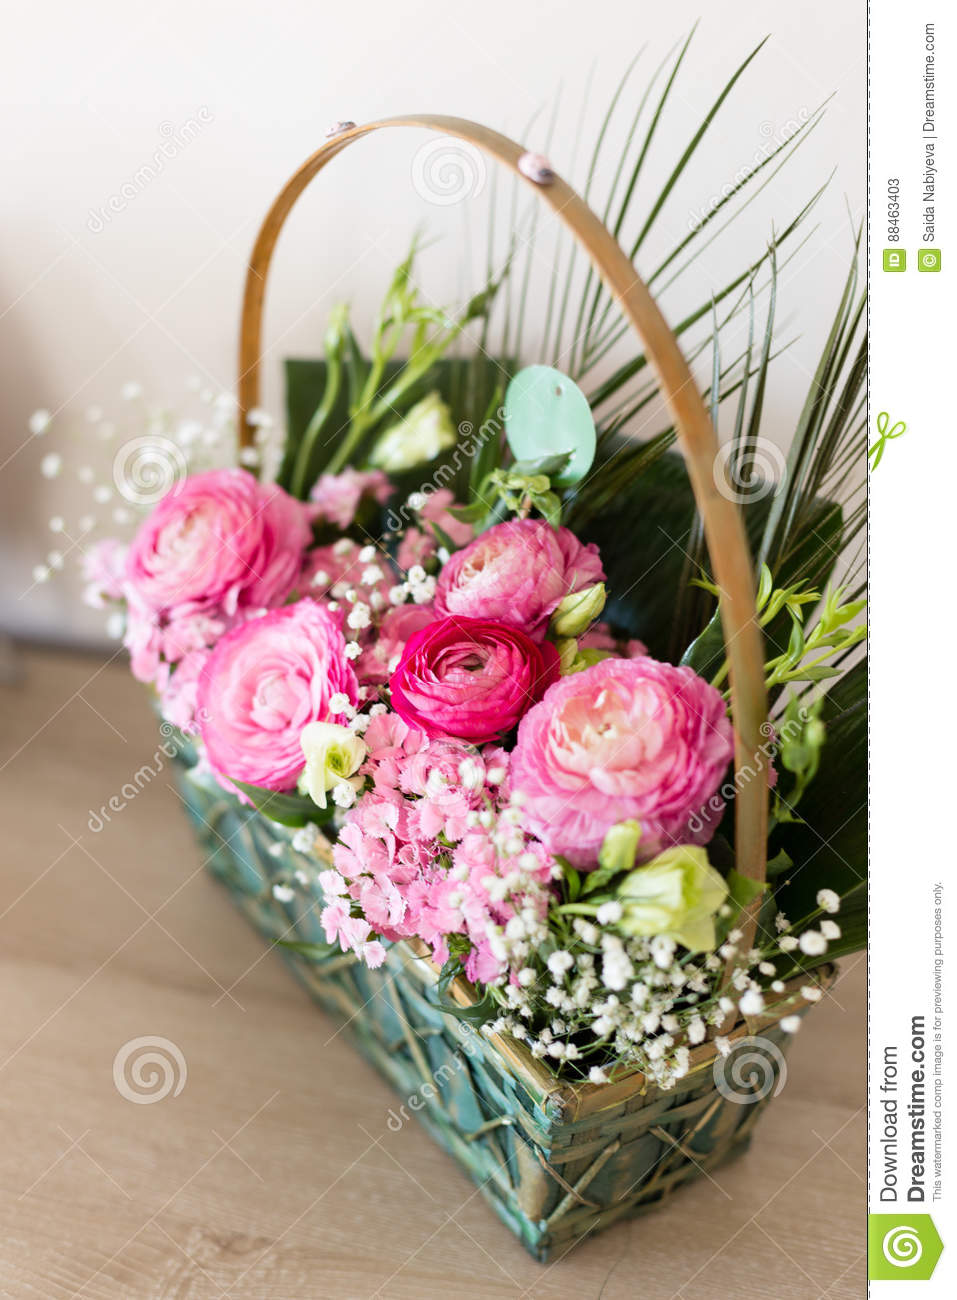 Flower arrangement in basket with ranunculus and small pink and download flower arrangement in basket with ranunculus and small pink and stock image image of mightylinksfo